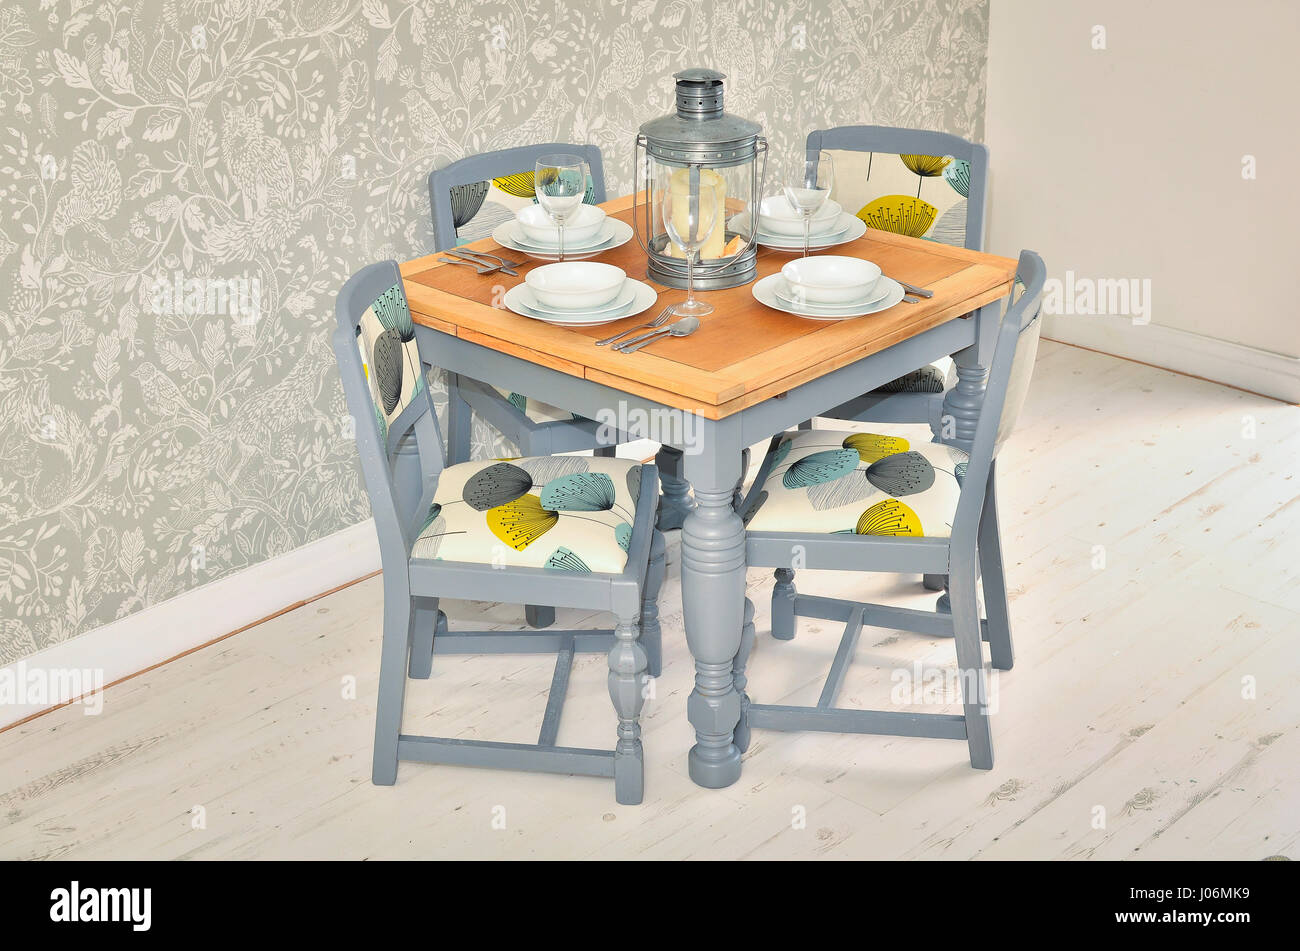 Dining table with chairs, plates, bowls and cutlery. Shabby chic dining room interior. - Stock Image